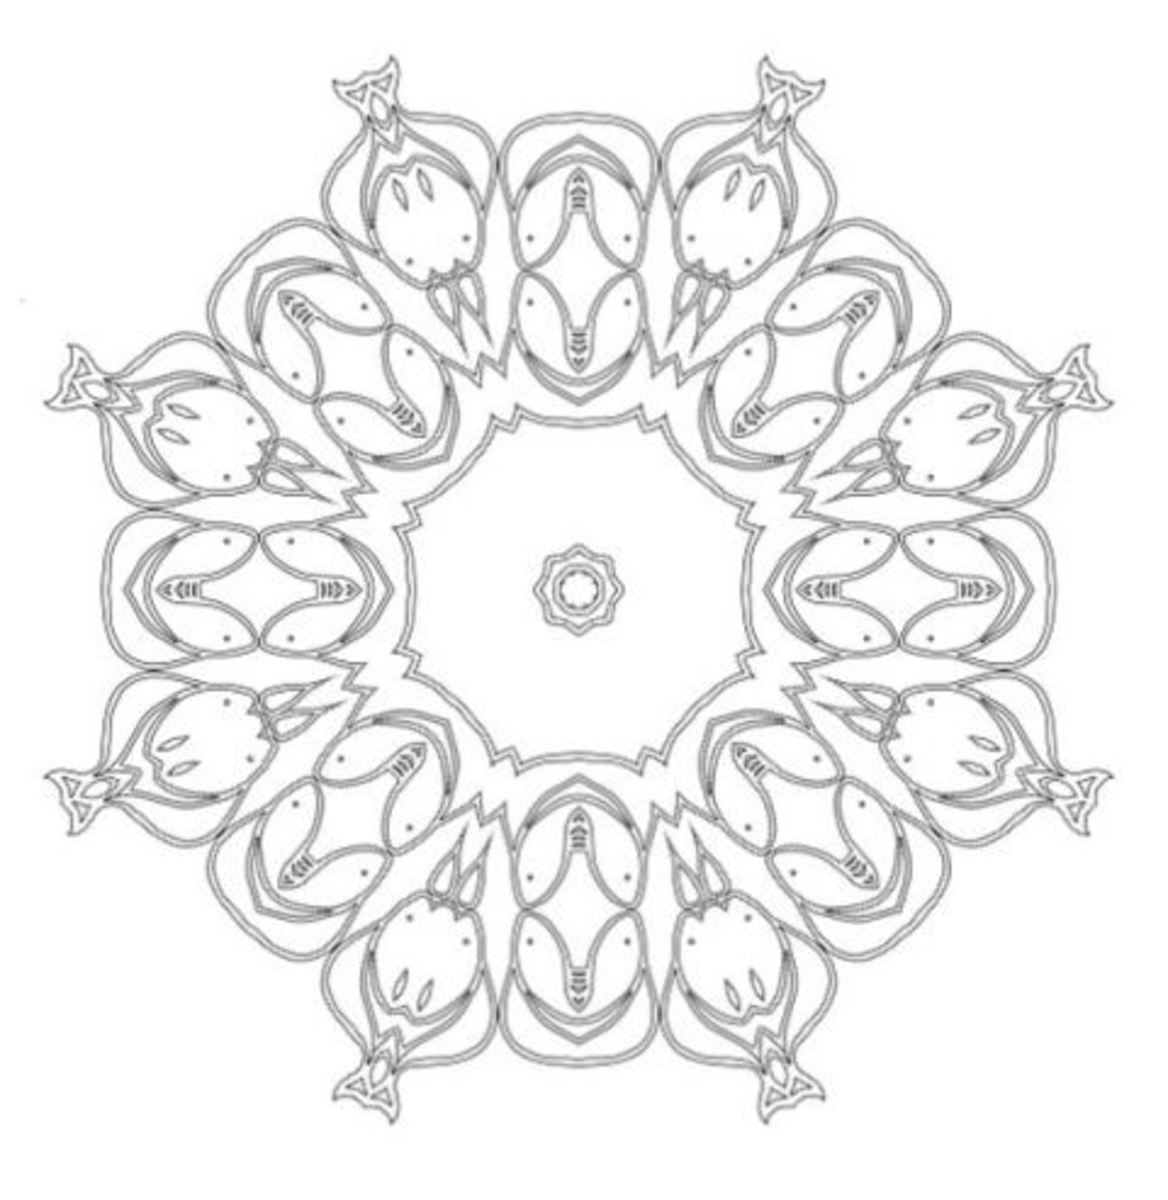 Lotus mandala design abstract coloring sheet